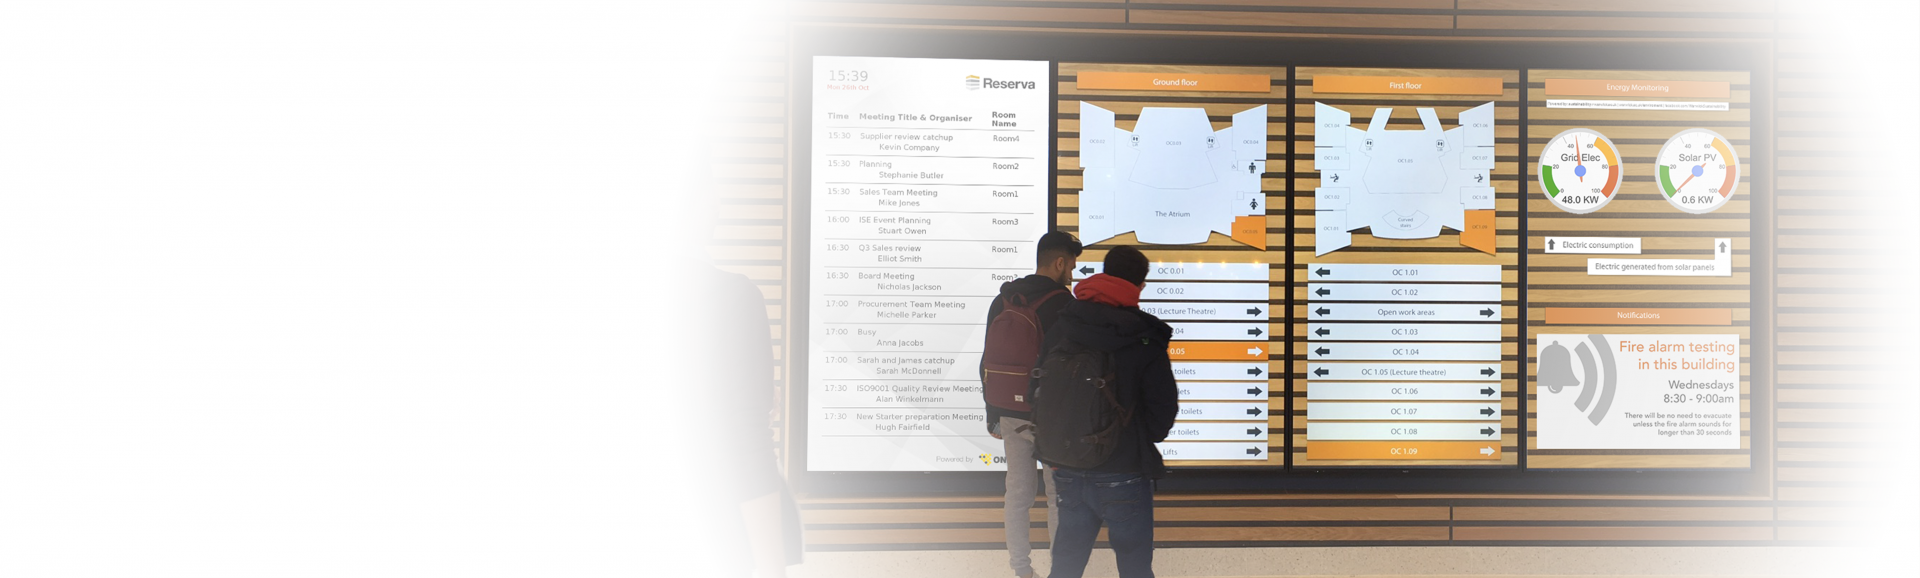 Digital Signage Systems